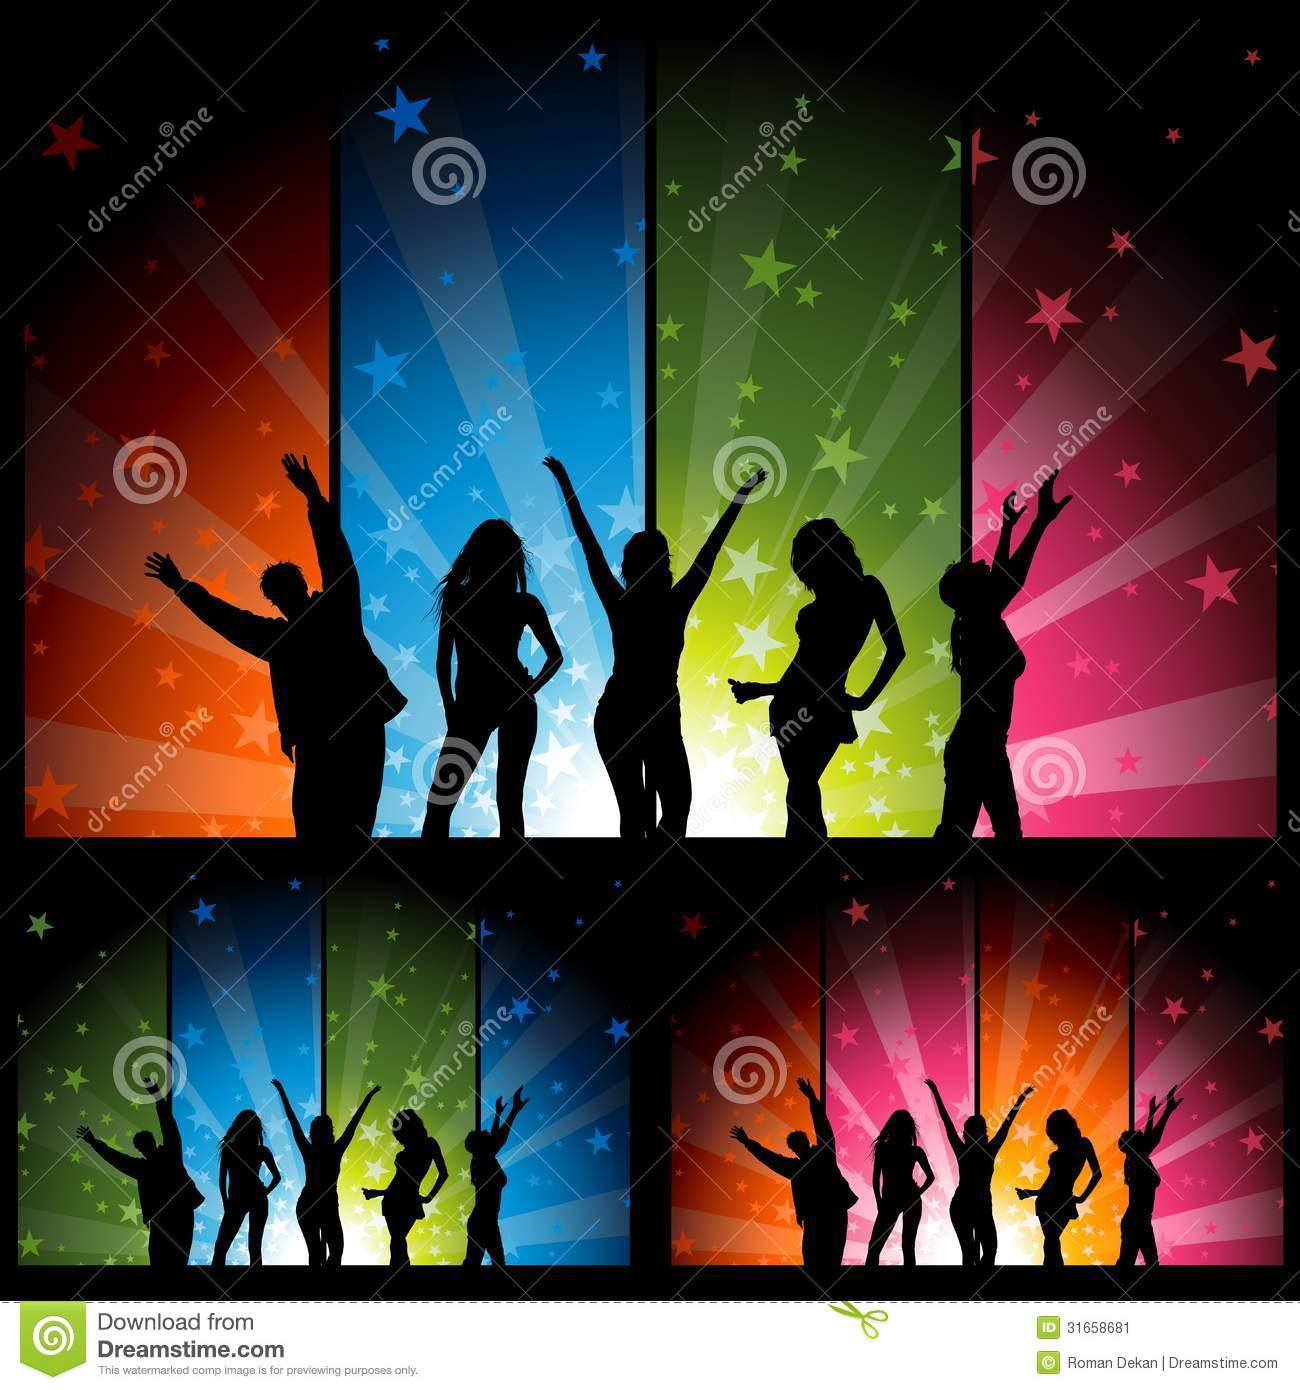 Dancers and colorful star burst banners stock vector for 123 get on the dance floor song download